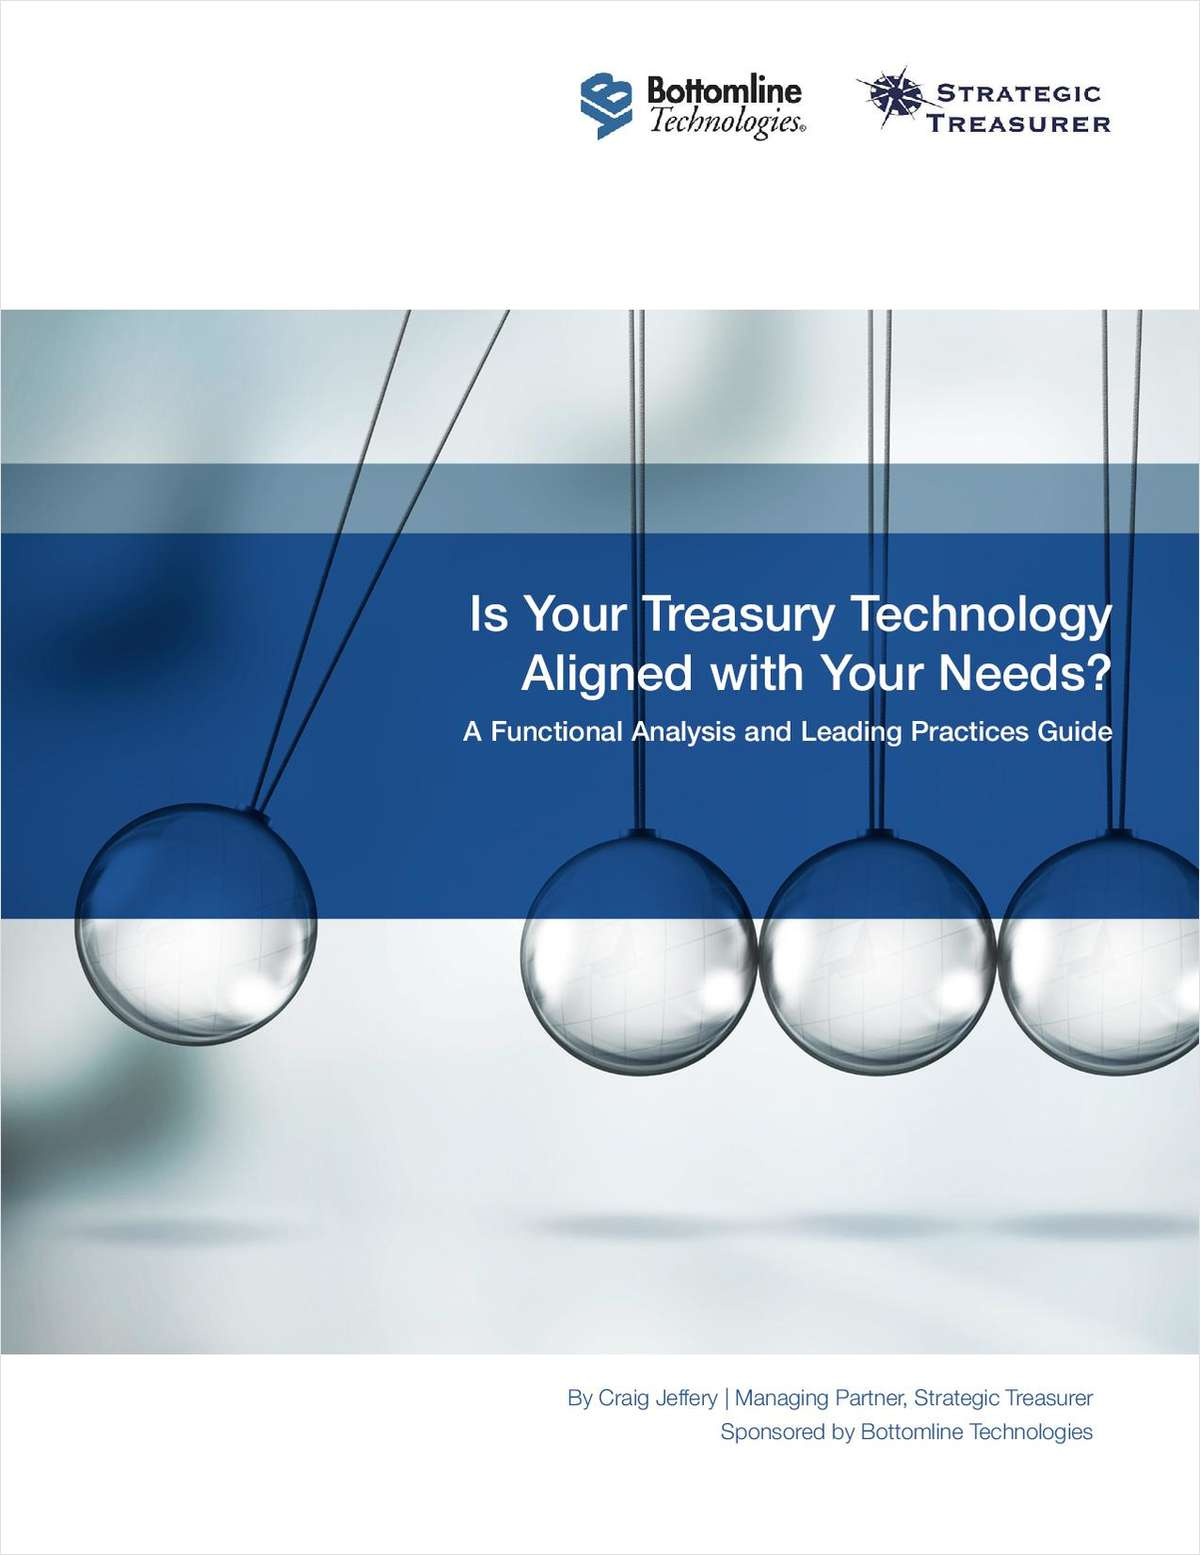 Aligning Your Treasury Technology with Your Needs